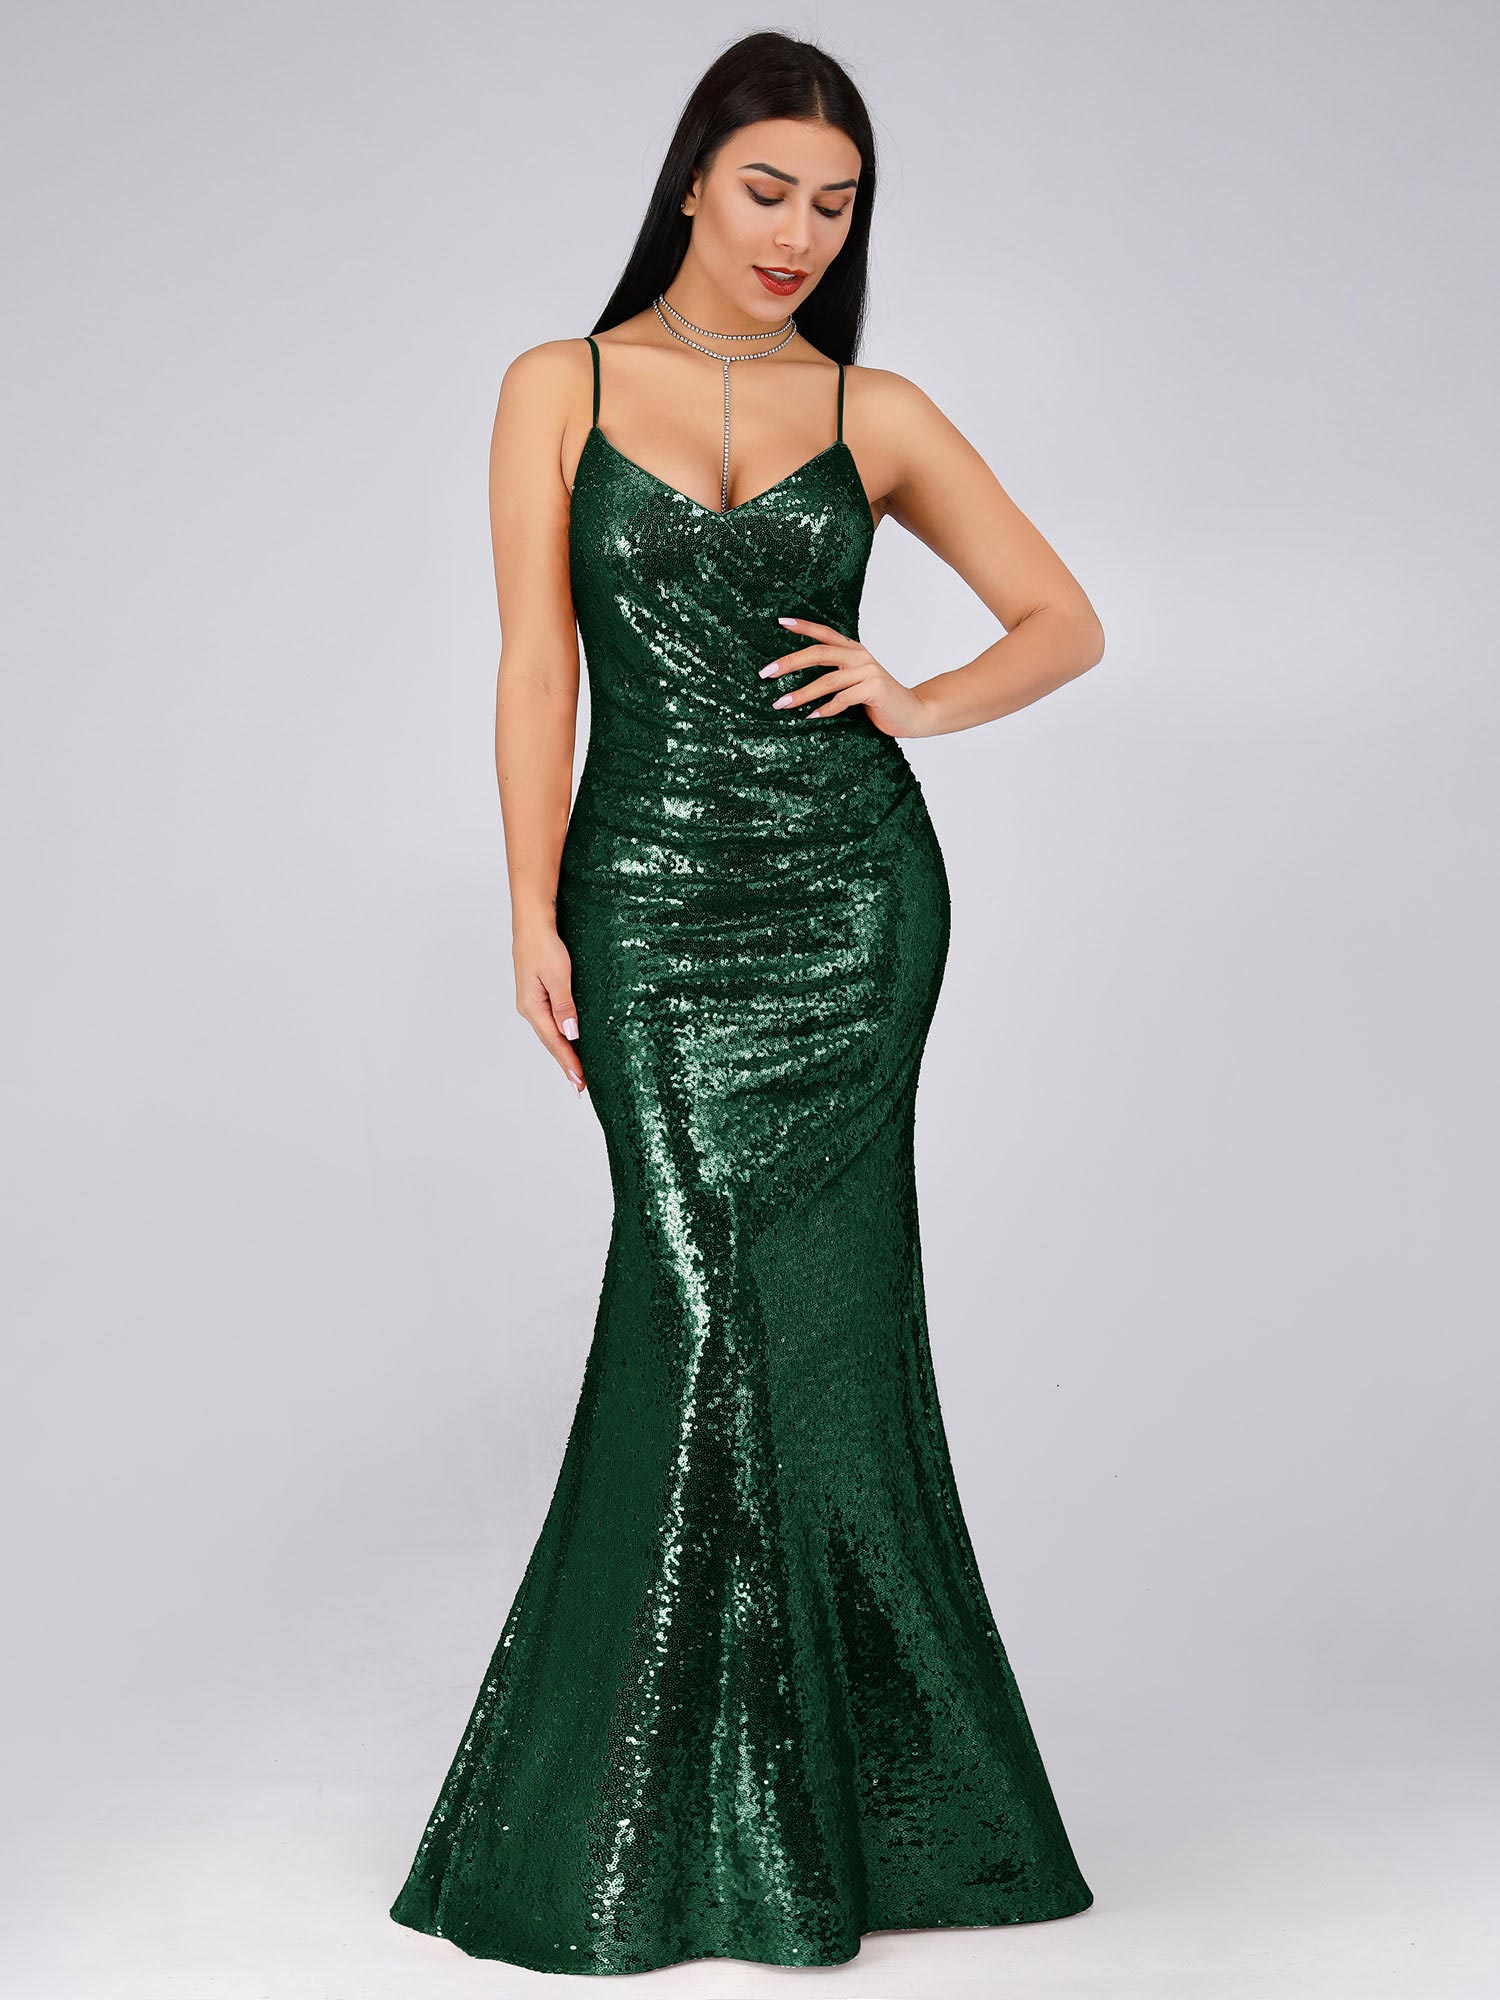 605fd537ac2 Ever-Pretty Glitter Long Strappy Deep V-neck Ball Prom Gown Party ...